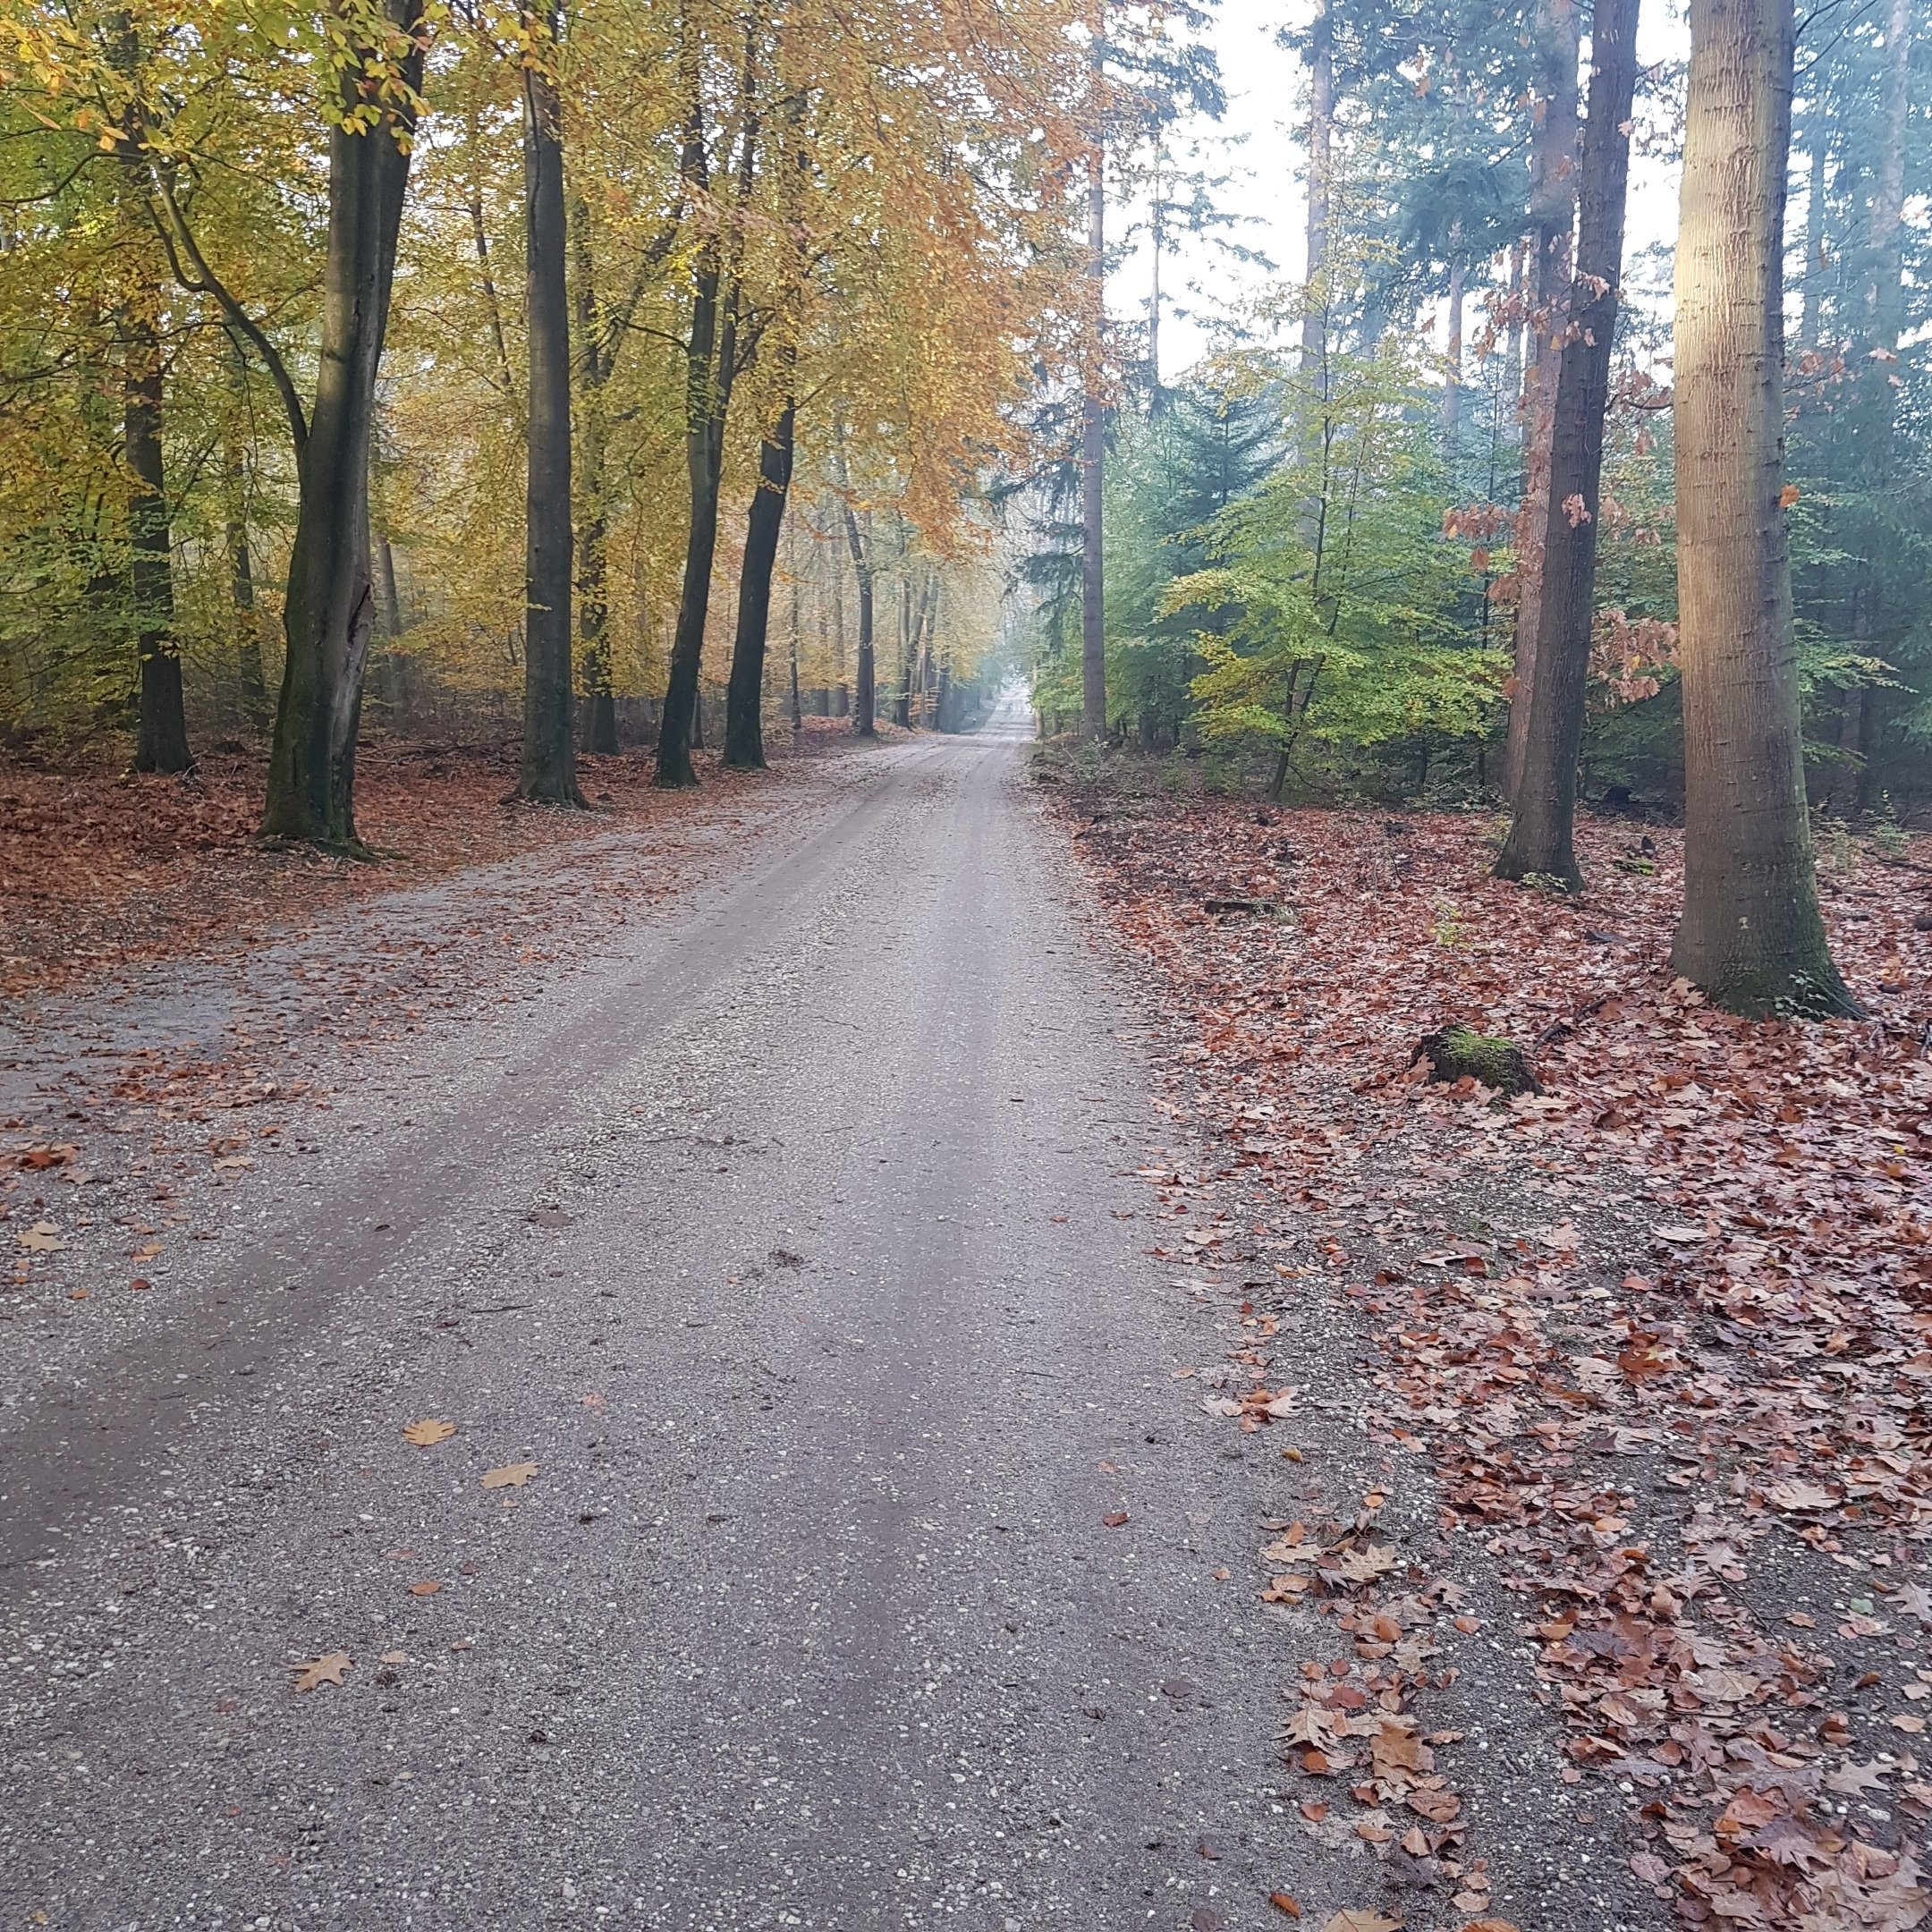 The road to the geocache - itstartswithacoffee.com #geocache #geocaching #geocachingNL #geocachingNetherlands #geocachingfun